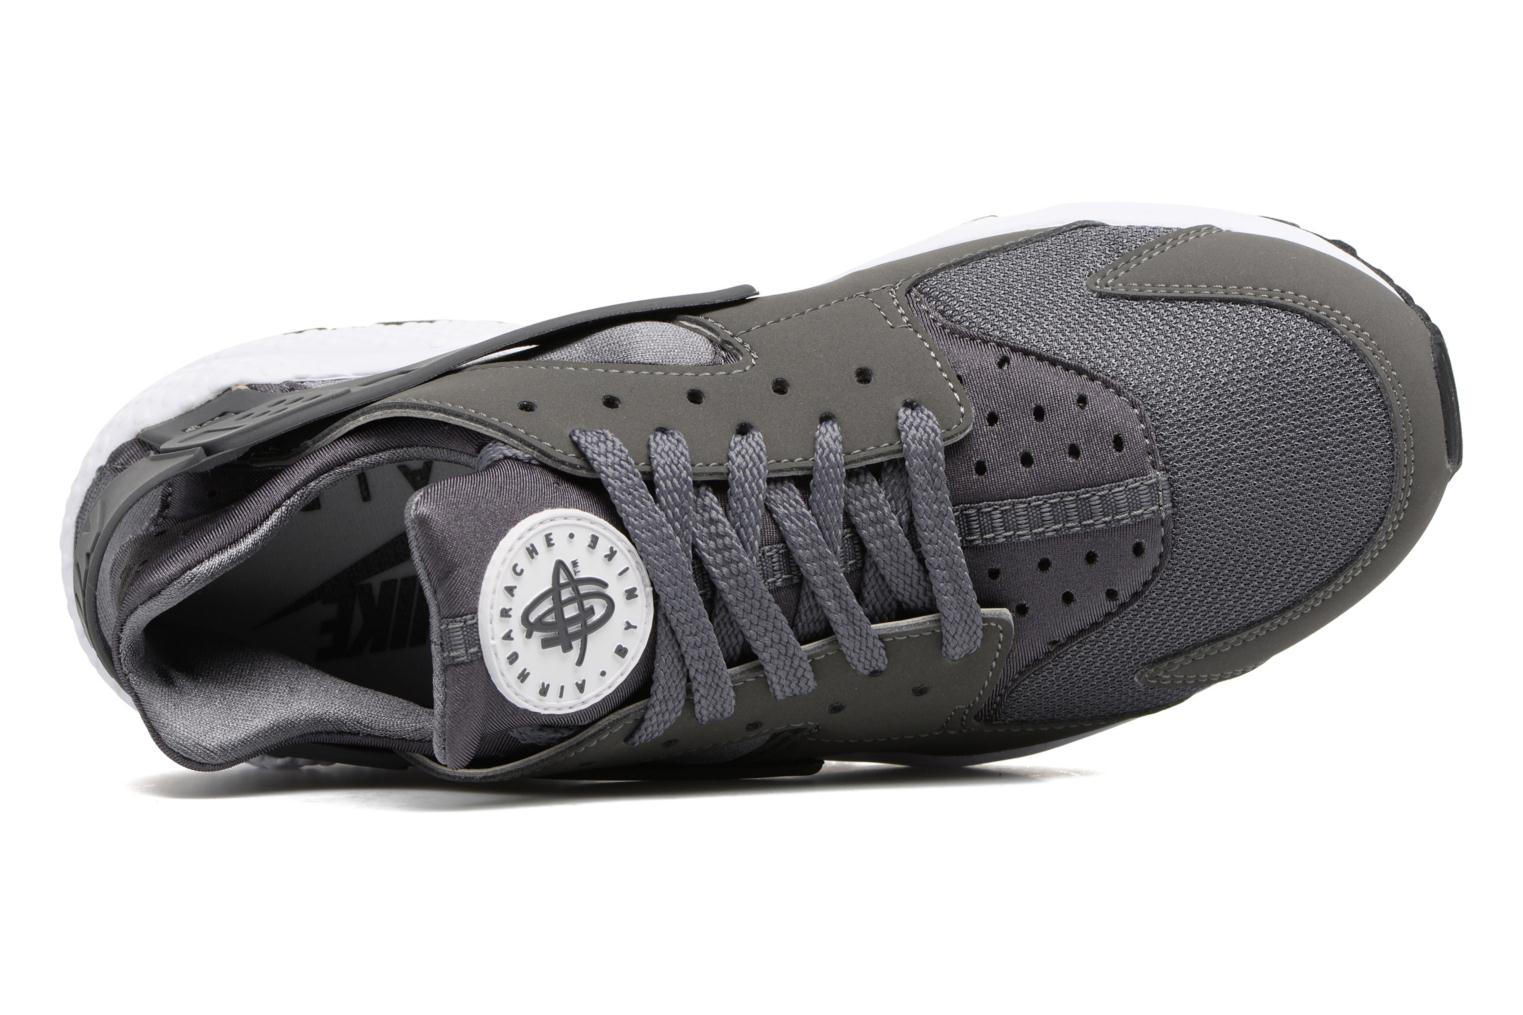 Nike Air Huarache Dark Grey/Dark Grey-White-Black